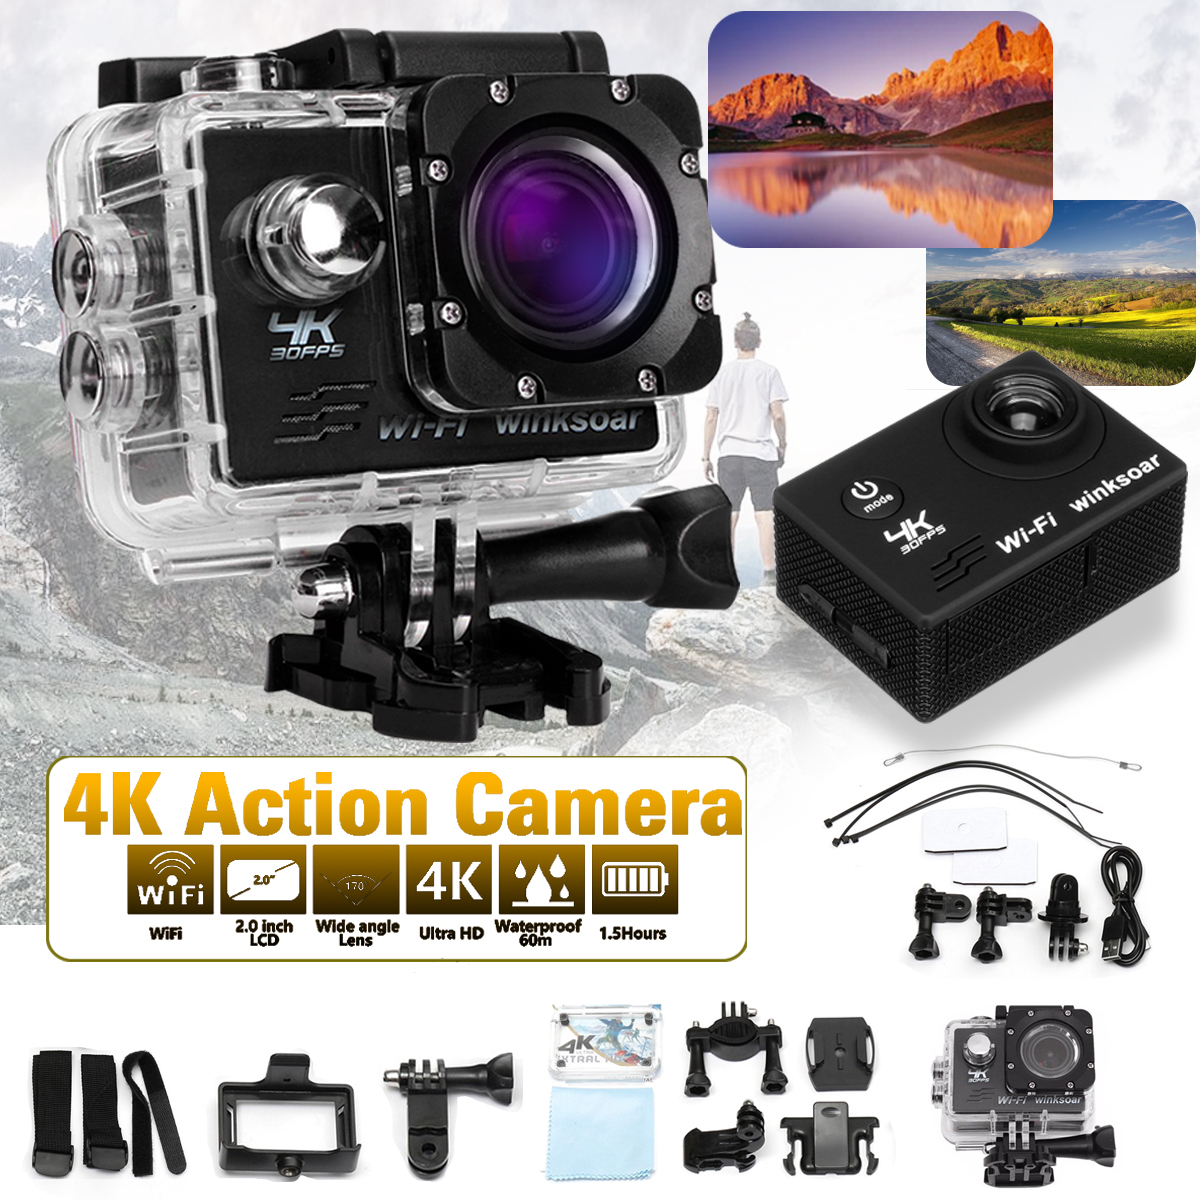 Winksoar SJ9000 Sports Action Camera WiFi HD 4K 1080P 16MP 120° Wide-angle Mini DV Recorder DV Camcorder Waterproof New Year Christmas Gifts Kids